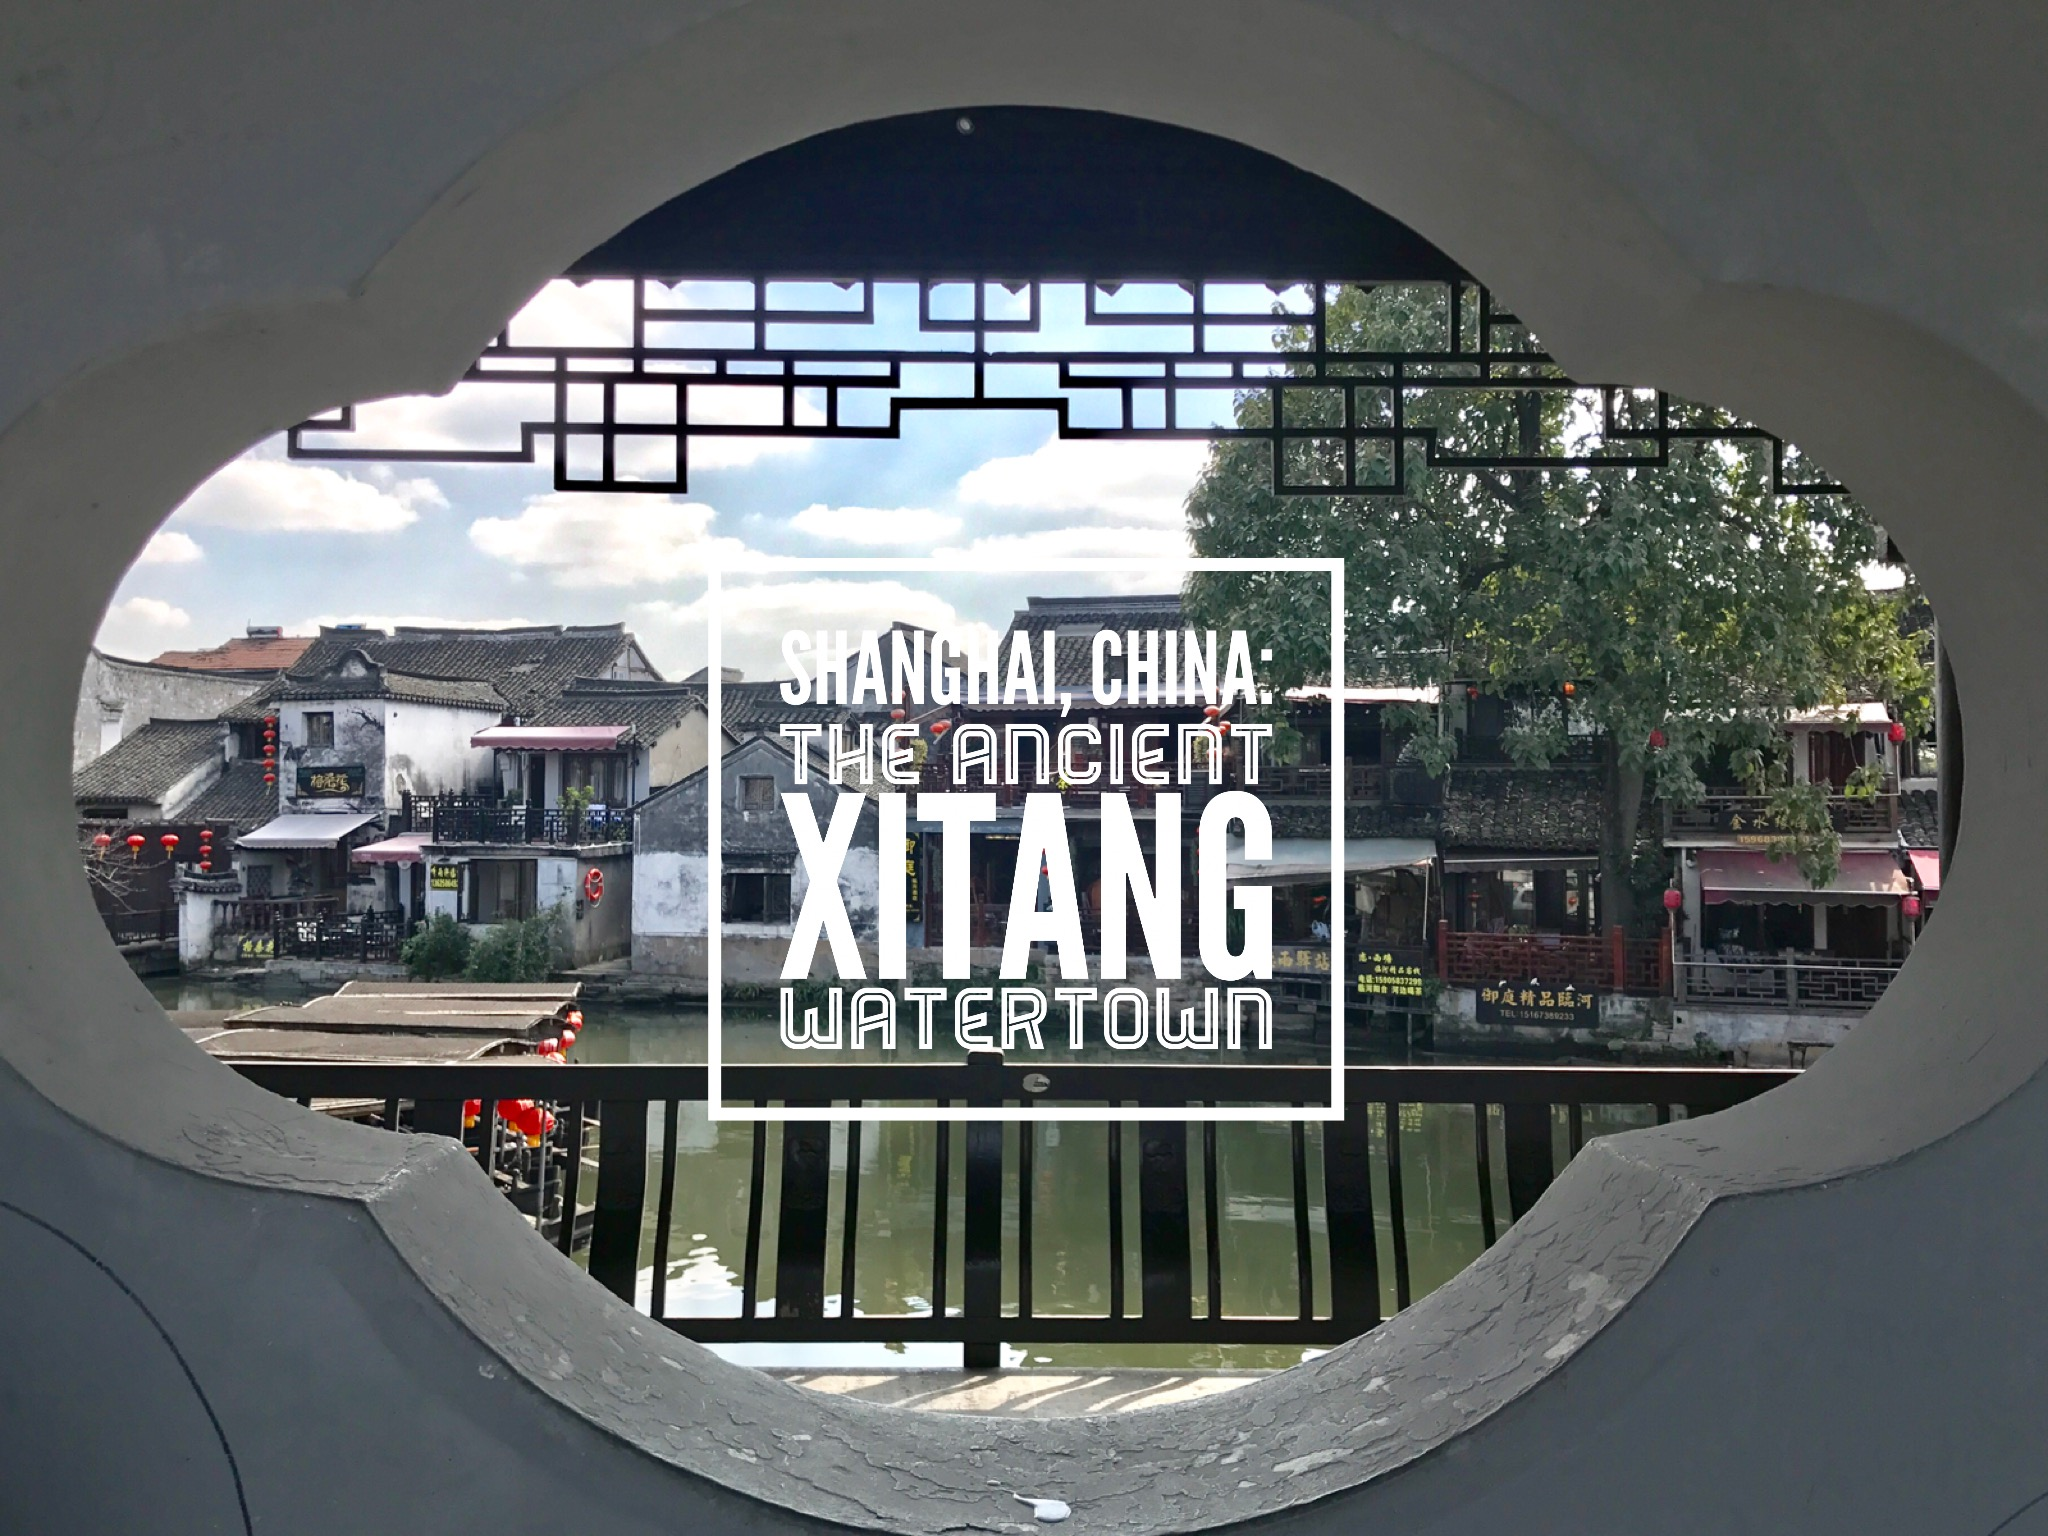 Shanghai, China: The Ancient Xitang Watertown